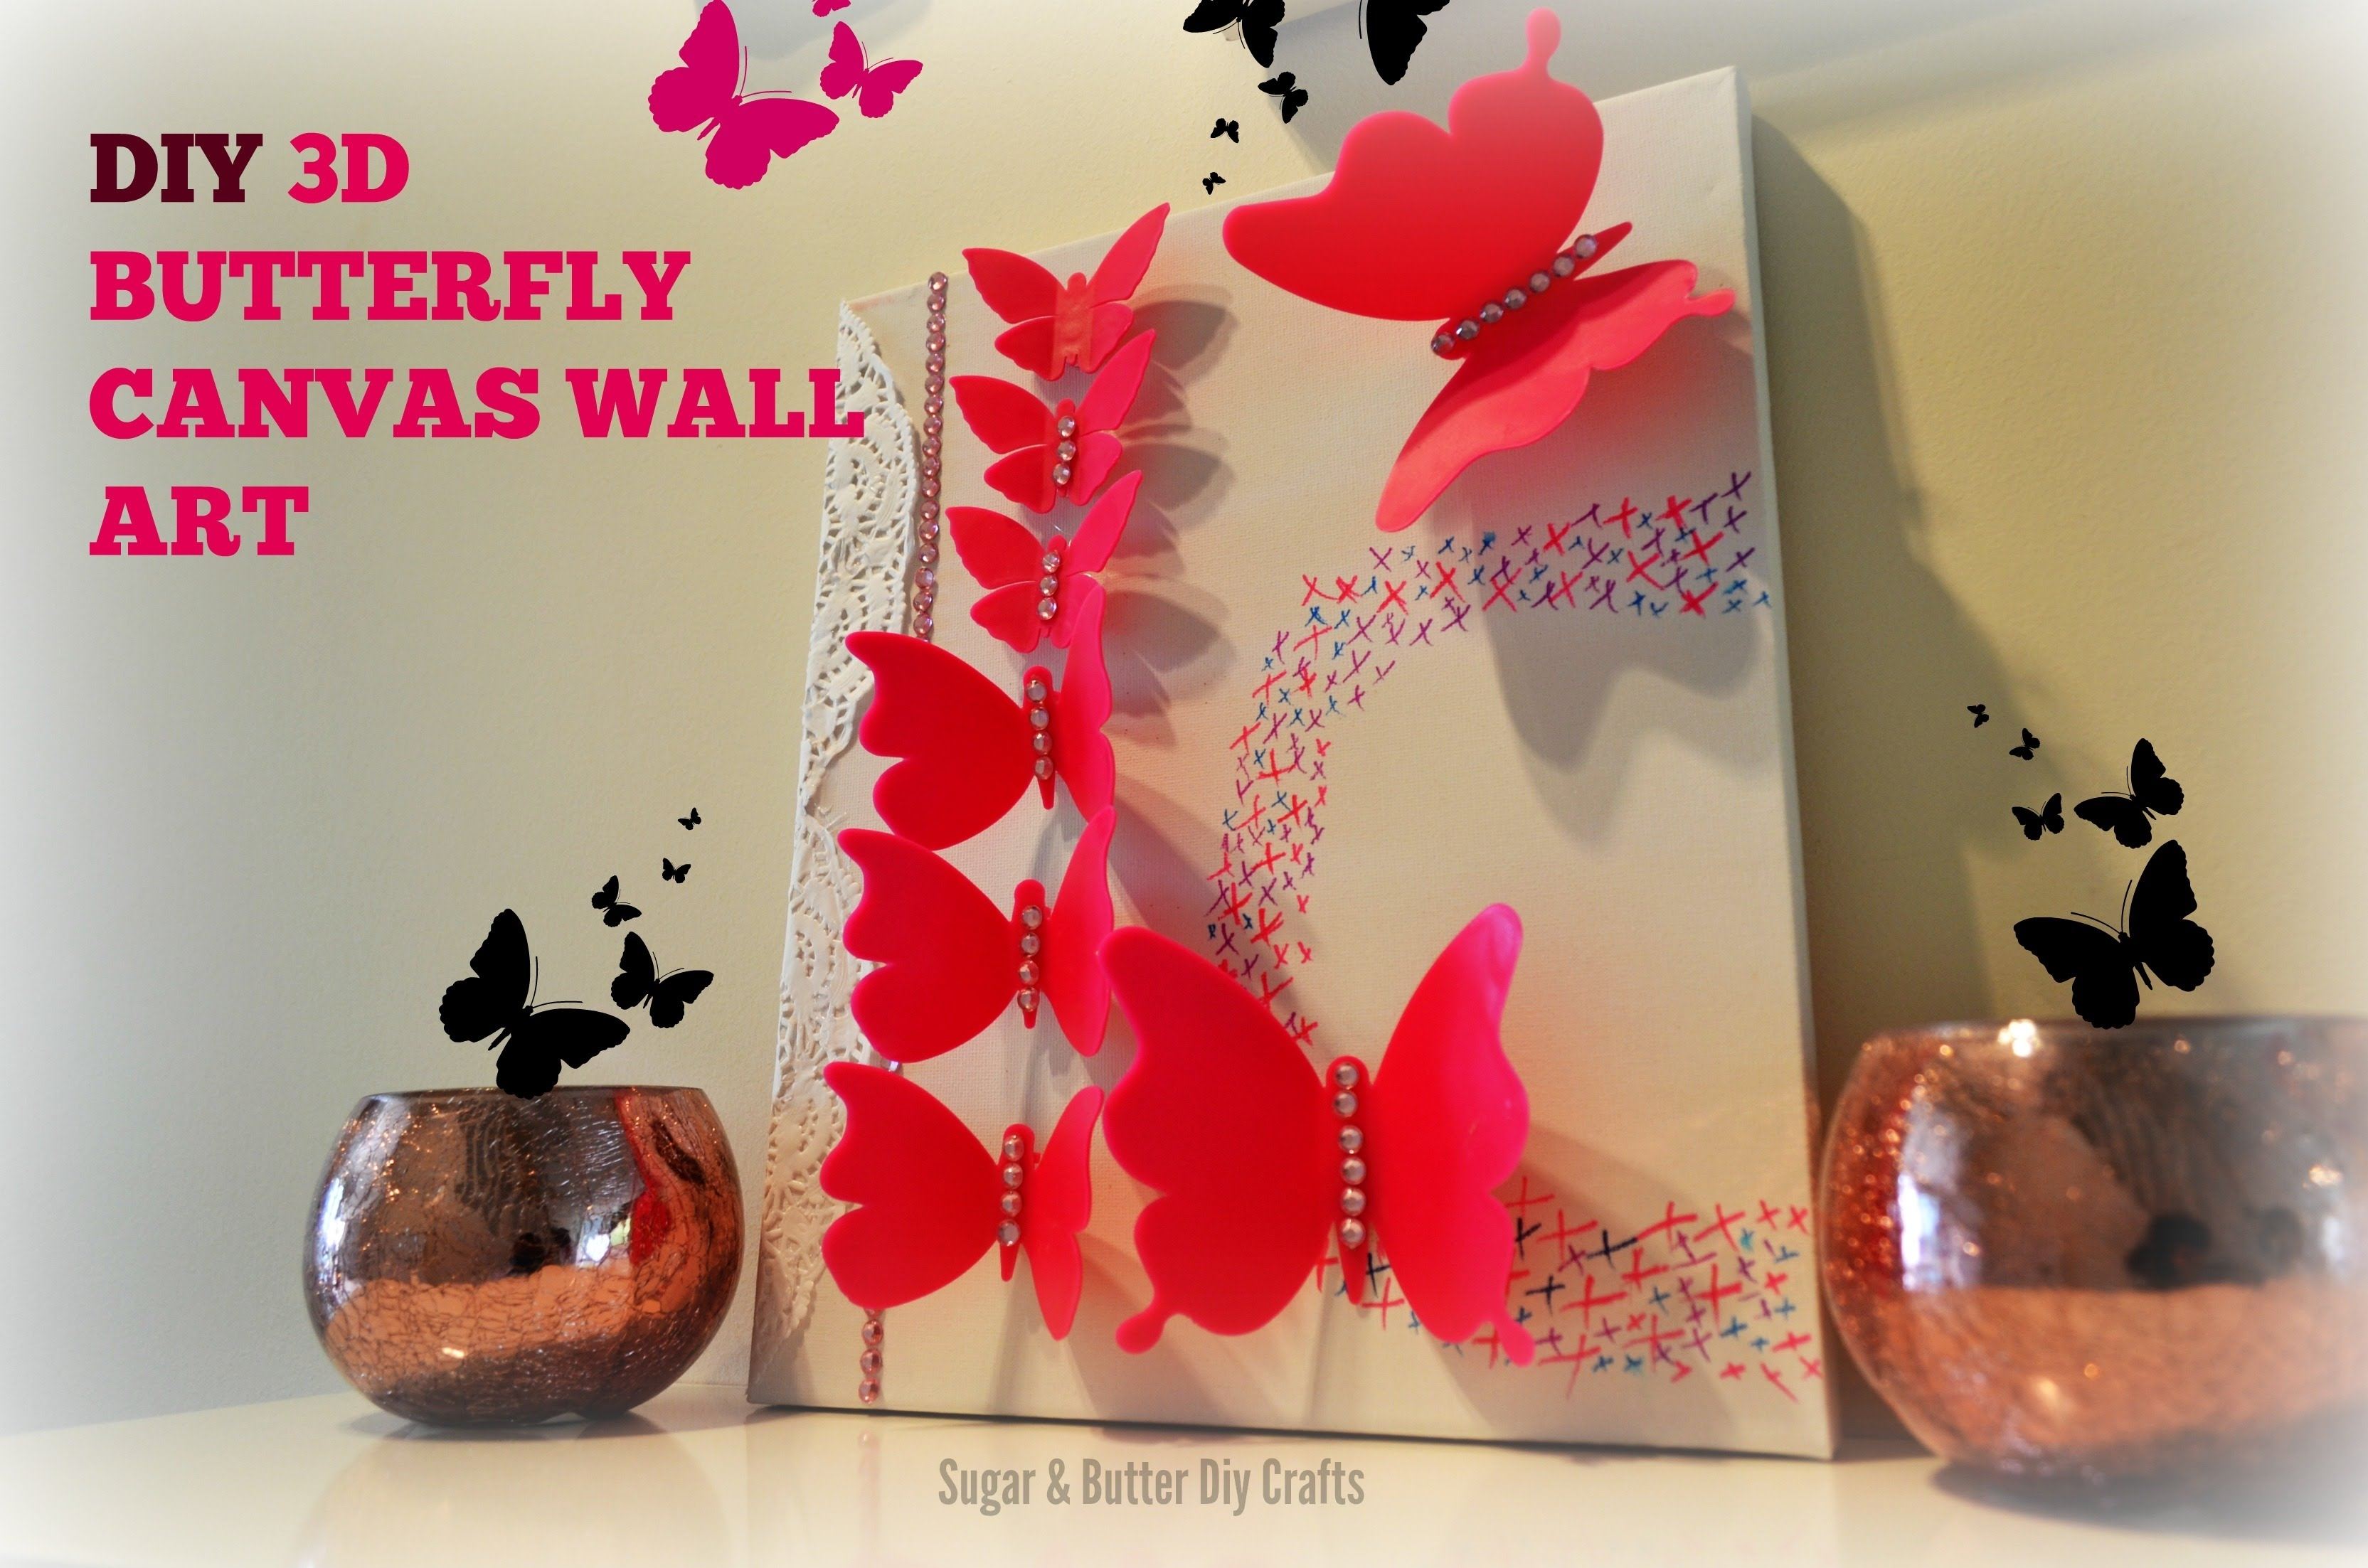 Diy Room Decor 3D Butterflies Wall Canvas Perfect For Girls Or With 2017 Butterflies Canvas Wall Art (View 7 of 15)